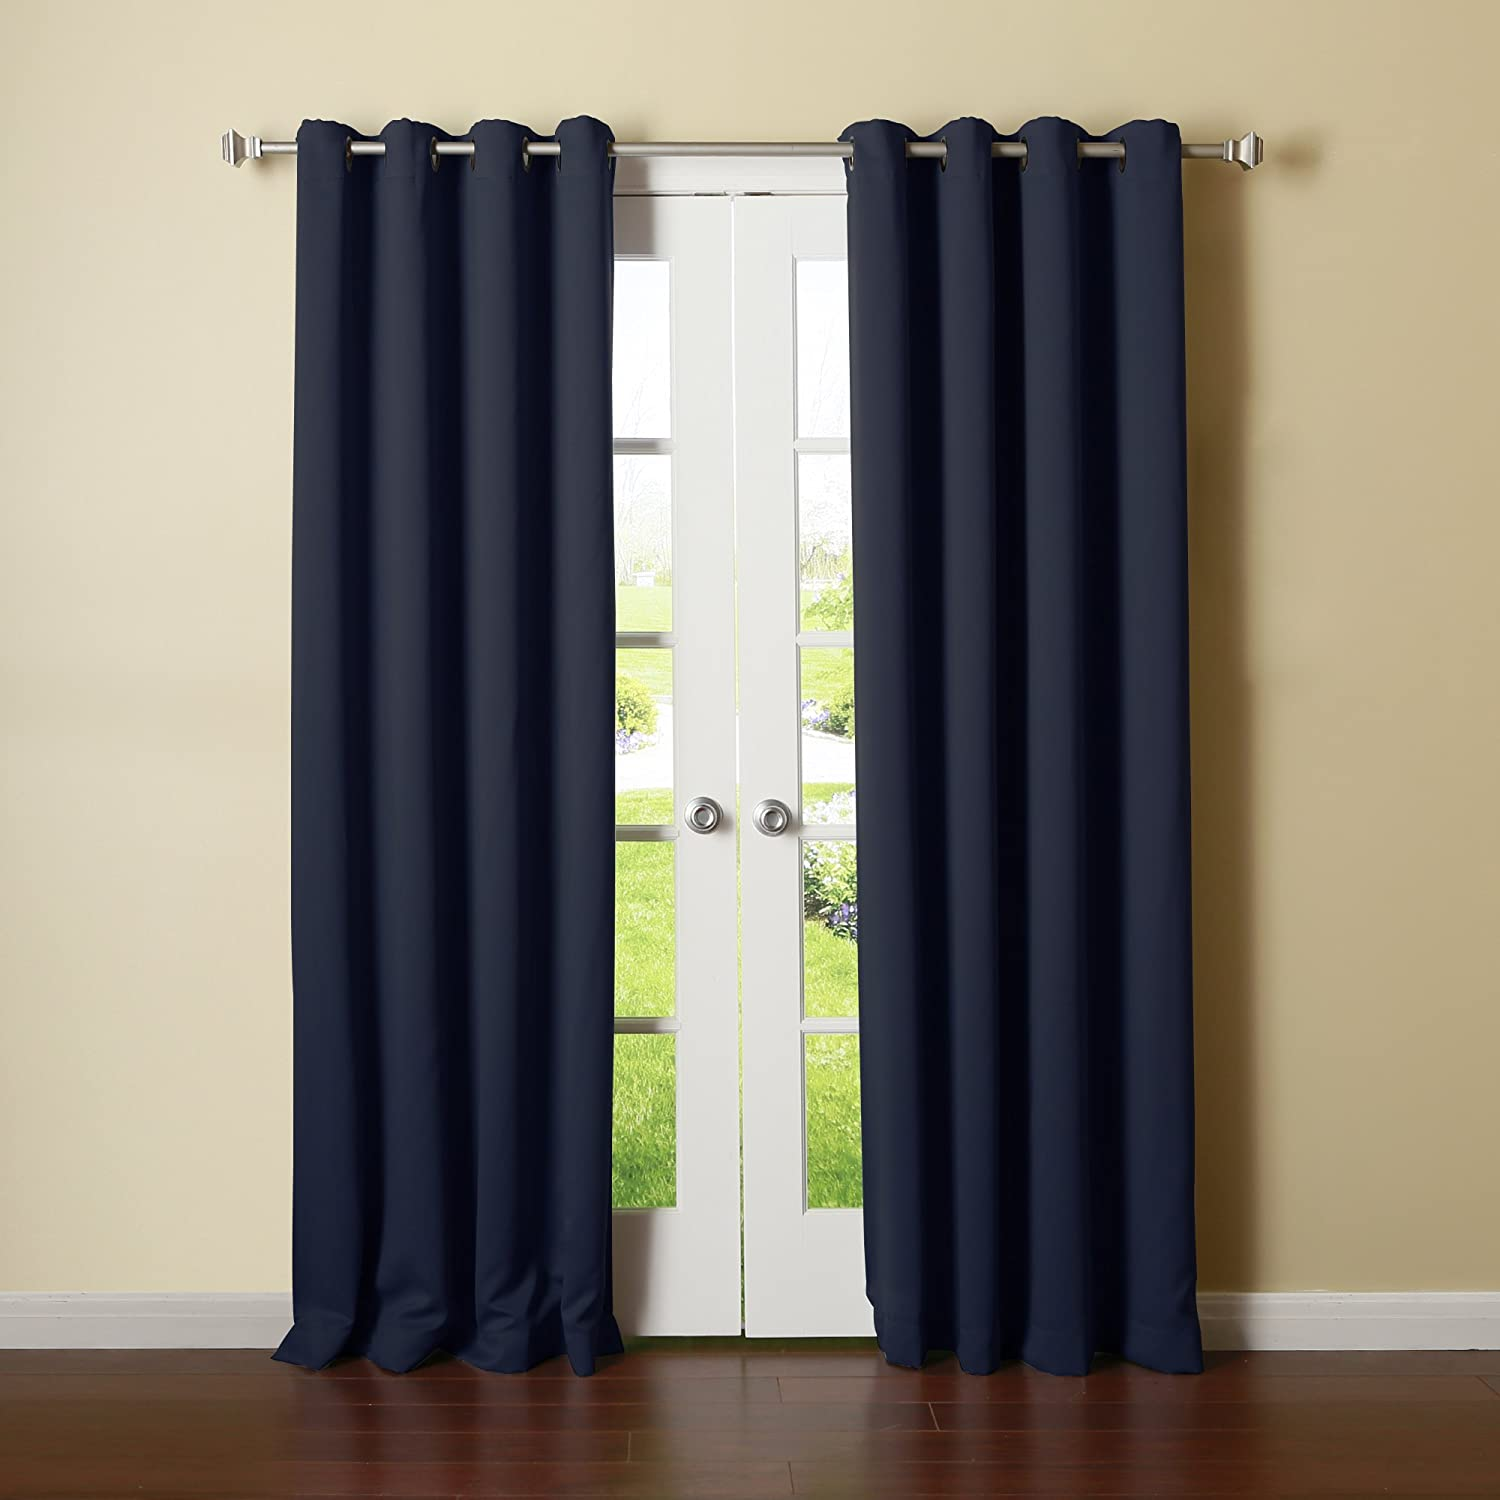 unbelievable treatments curtain sale and patterned gold insulated blackout inspirations of polyester on images drapes curtains full x amazon window coffee size gray embroidery